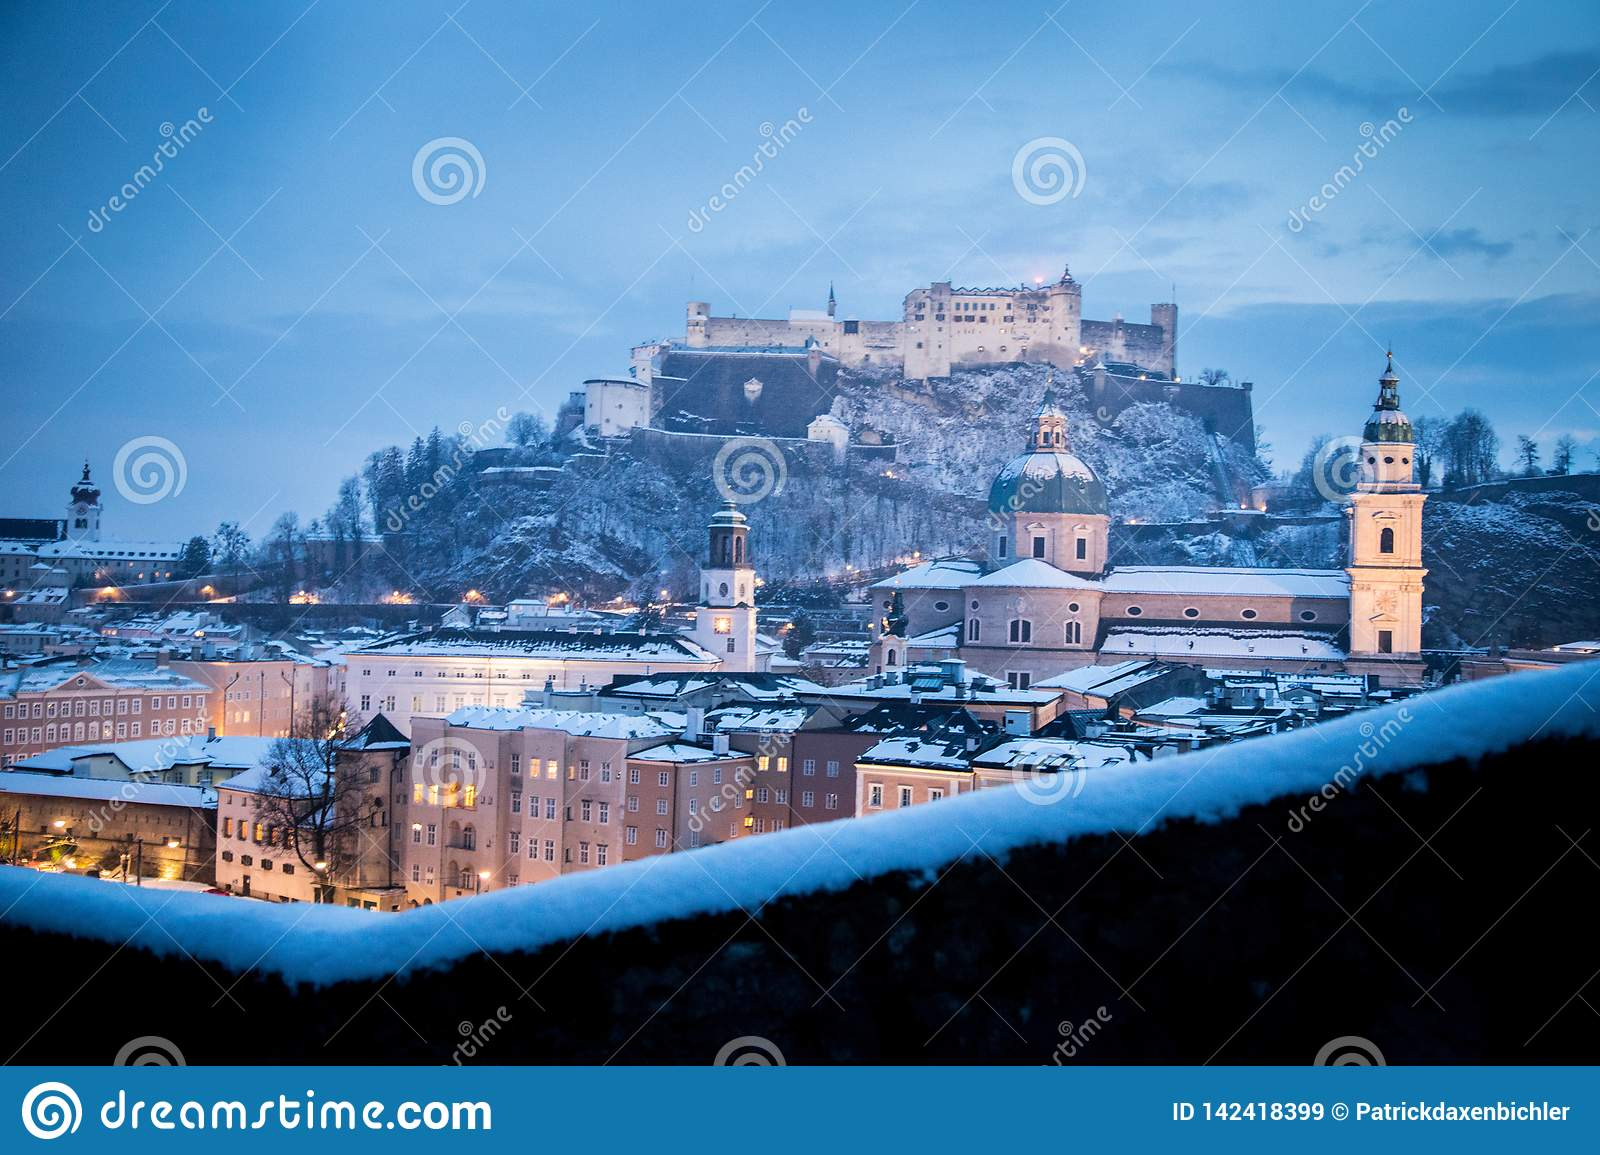 Salzburg Christmas Time.Salzburg Old City At Christmas Time Snowy In The Evening